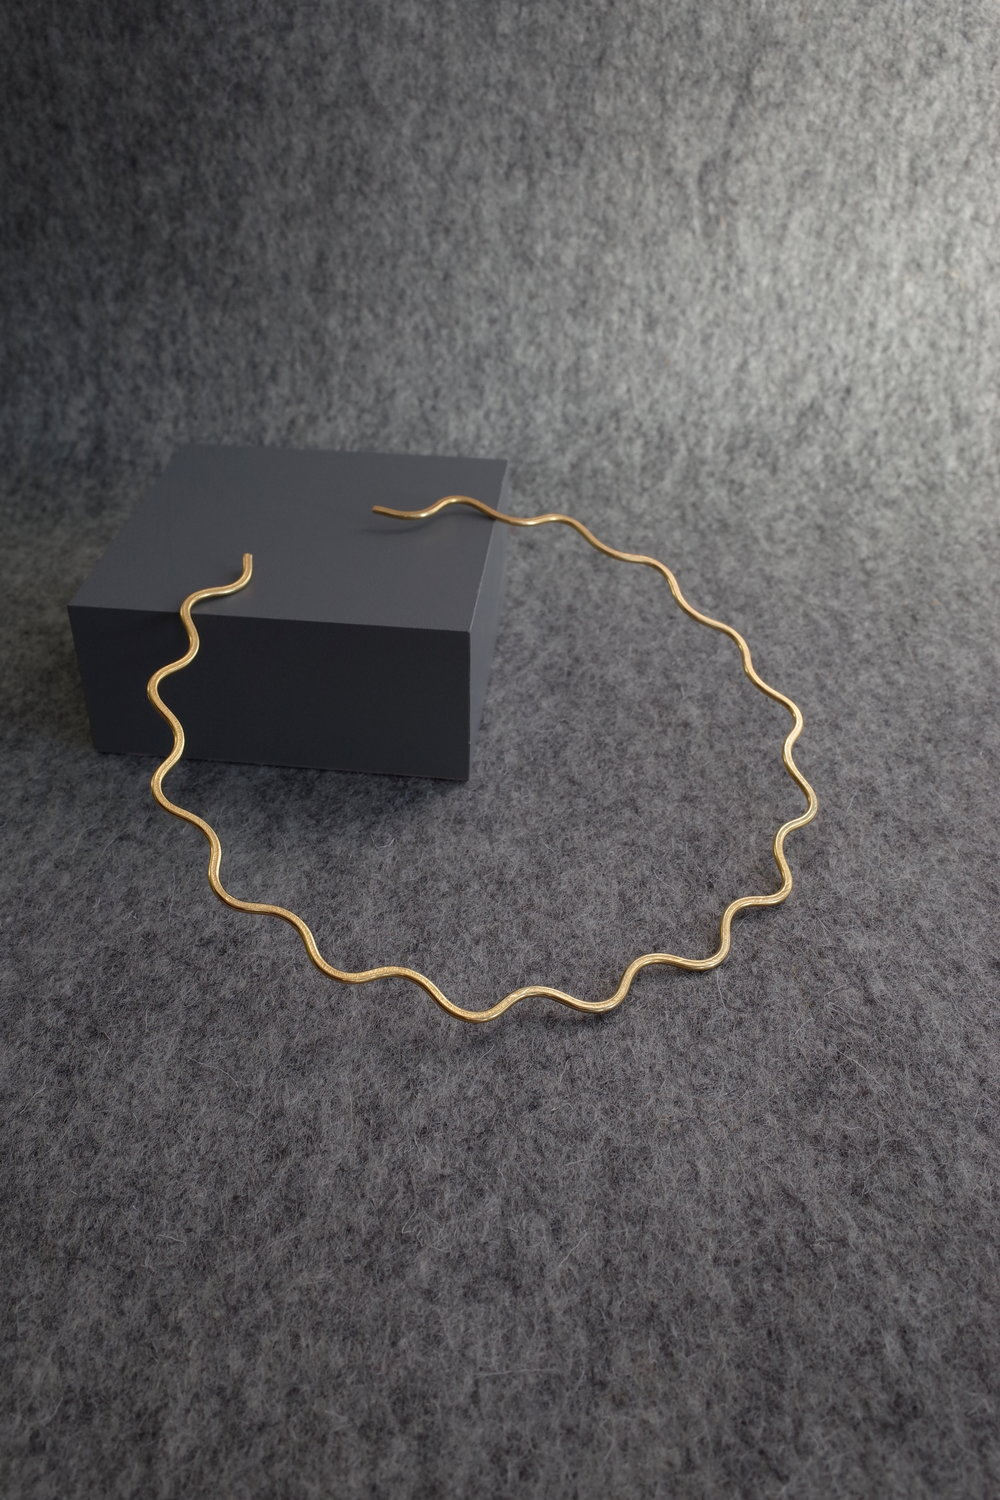 Wave Torc, gold vermeil. By Heather Wof jewellery